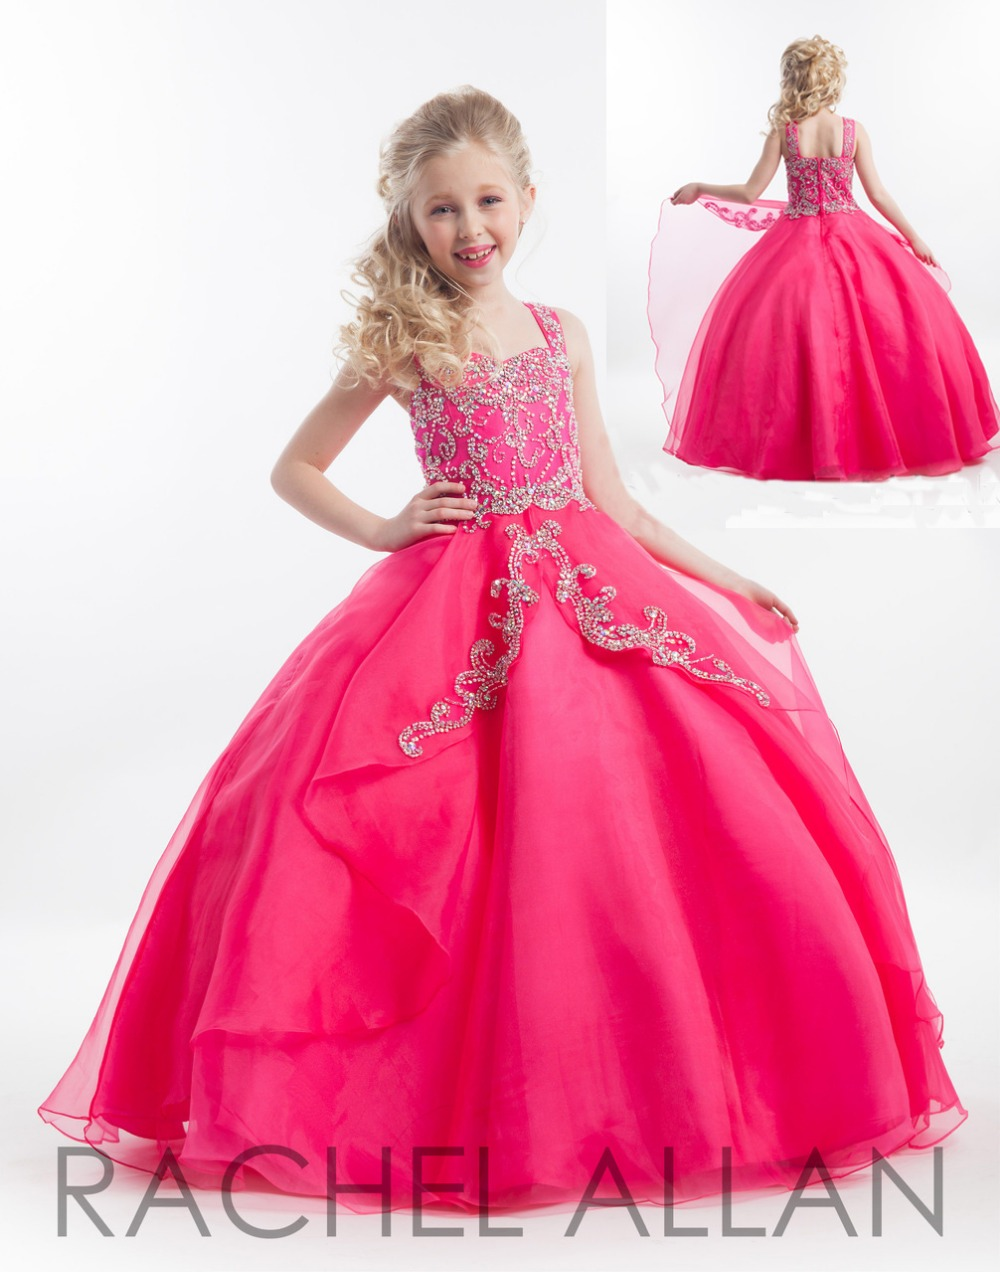 2016 Summer Kids Bridesmaid Dress Children Dresses Evening Birthday Party Gowns Flower Girls Dress Princess Pageant Dresses(China (Mainland))